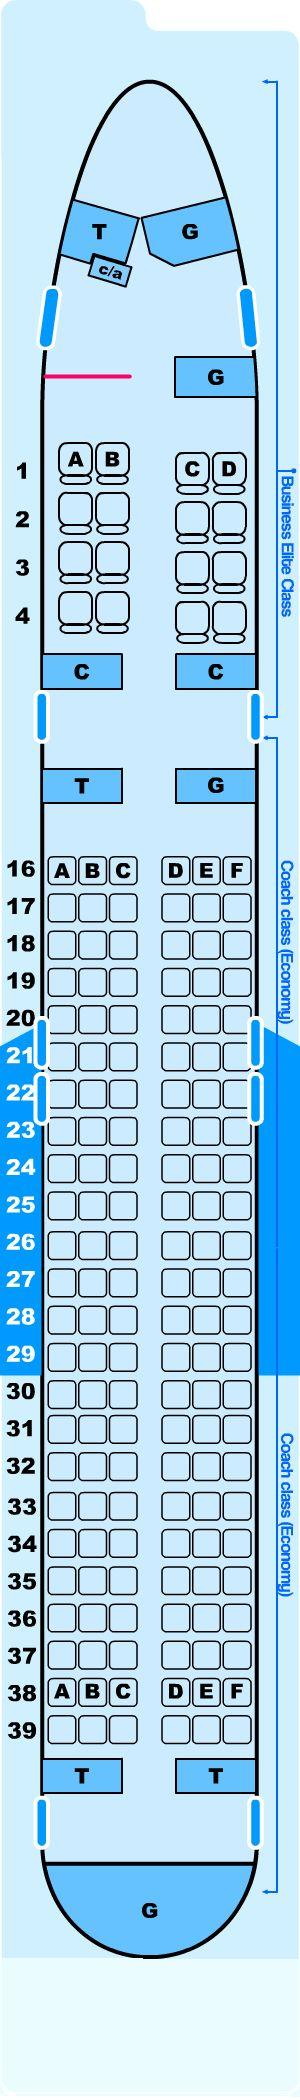 Seat map for Northwest Airlines Boeing B757 200 (5600) Atlantic